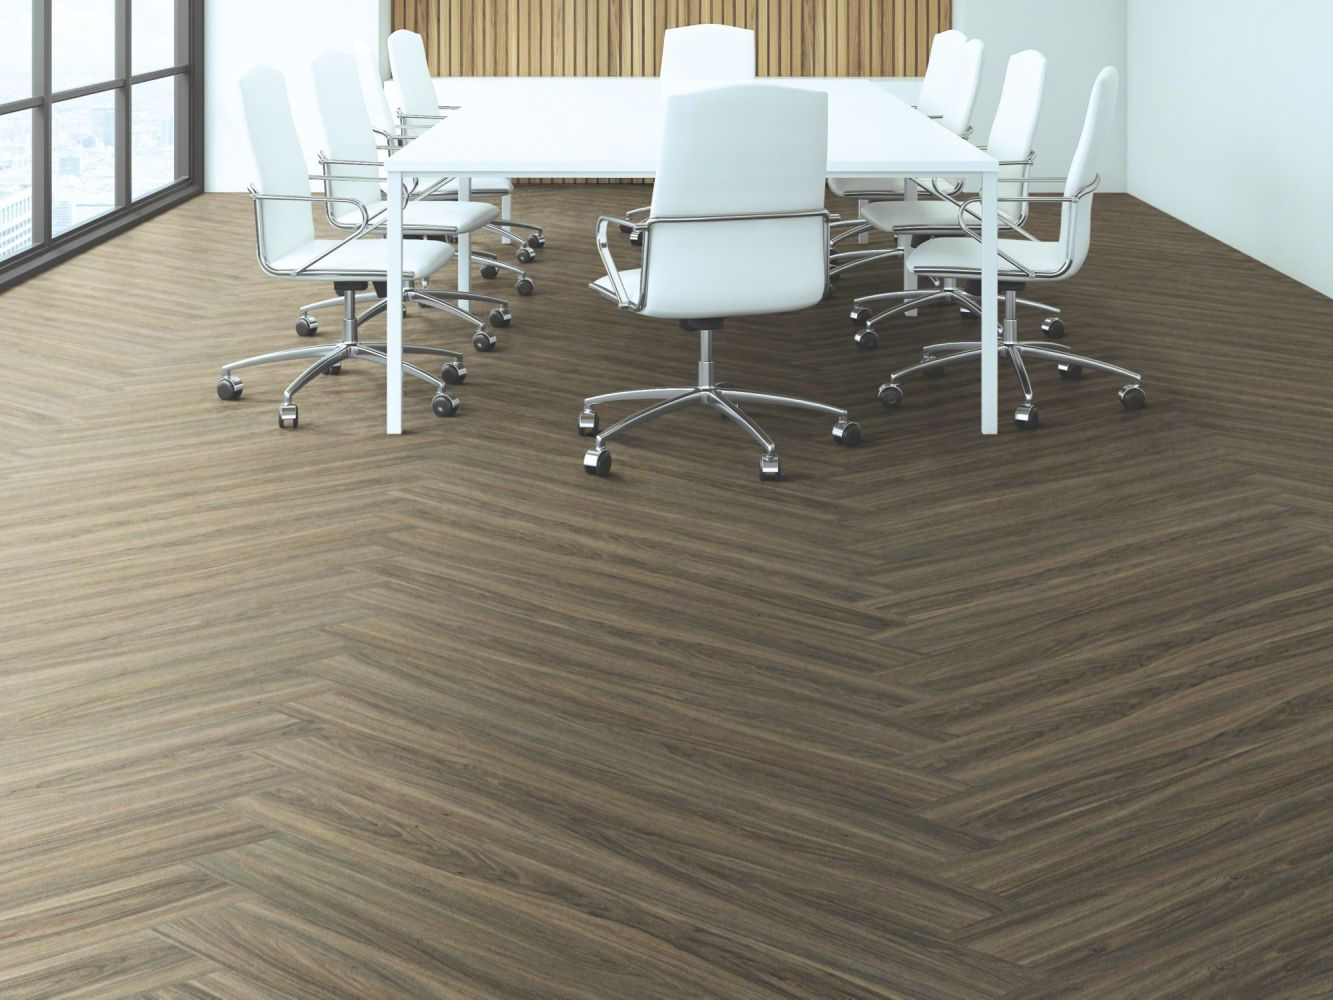 Shaw Floors Vinyl Residential Endura 512c Plus Cinnamon Walnut 00150_0736V